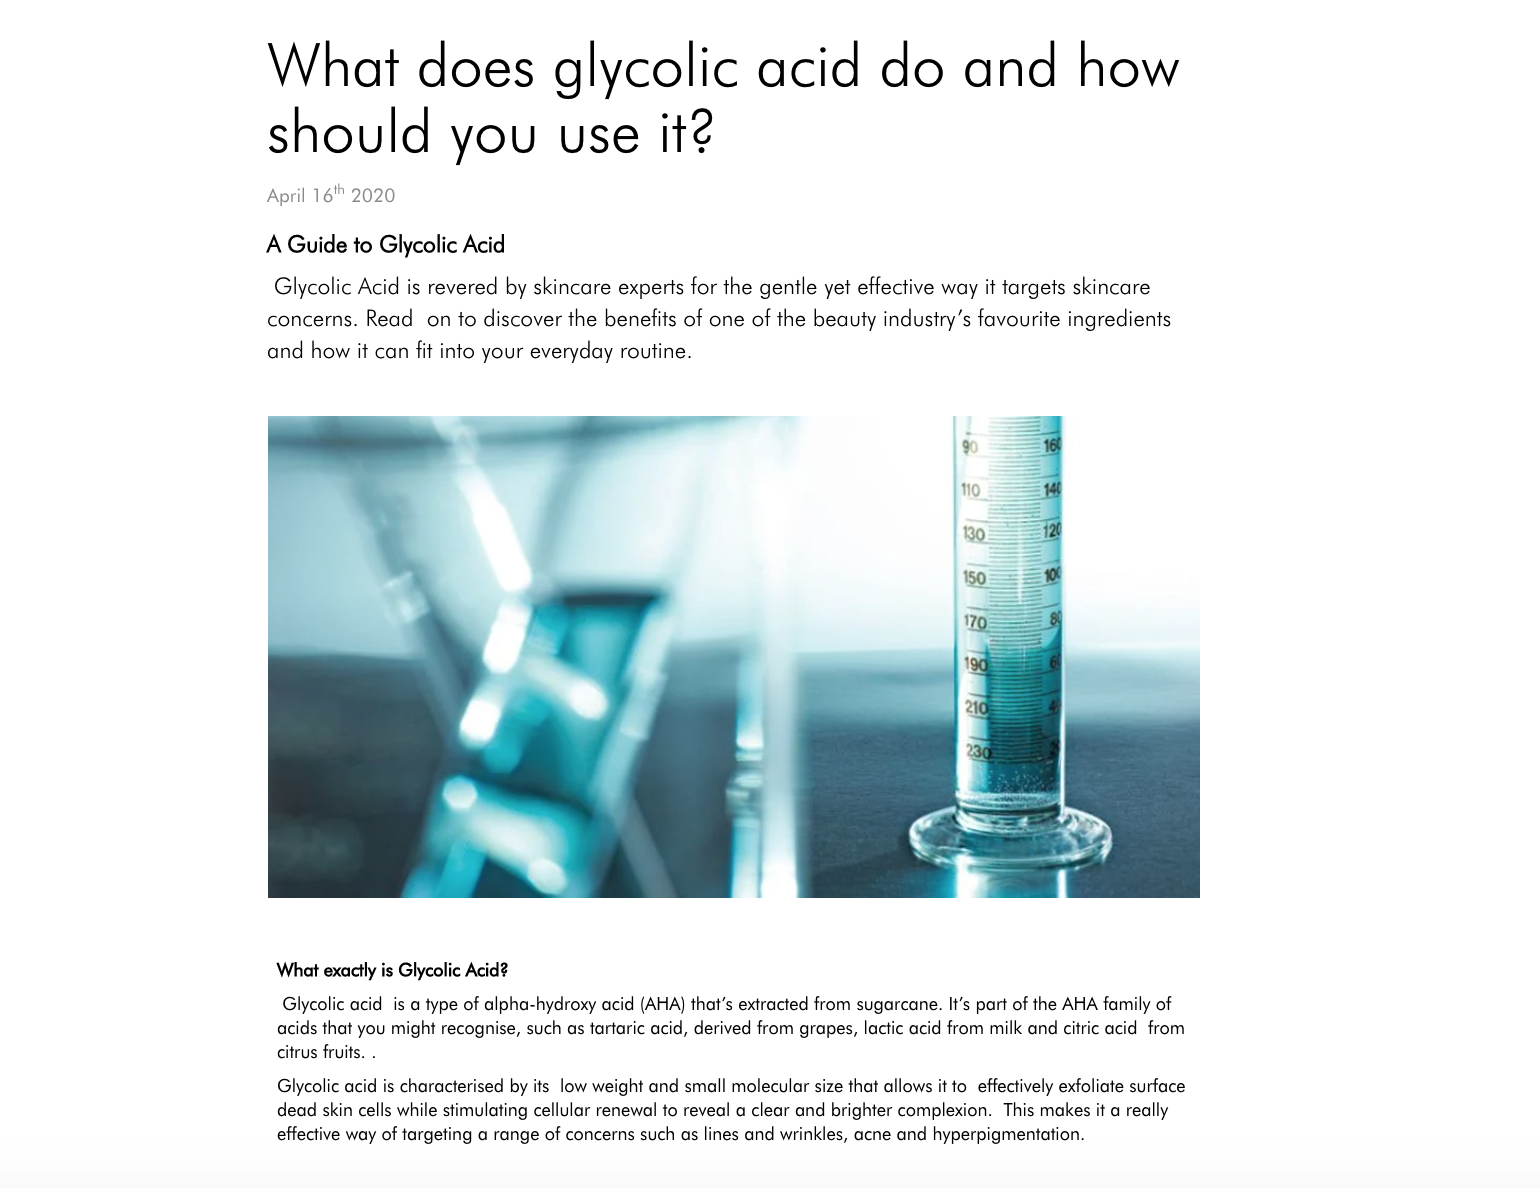 What does glycolic acid do and how should you use it?